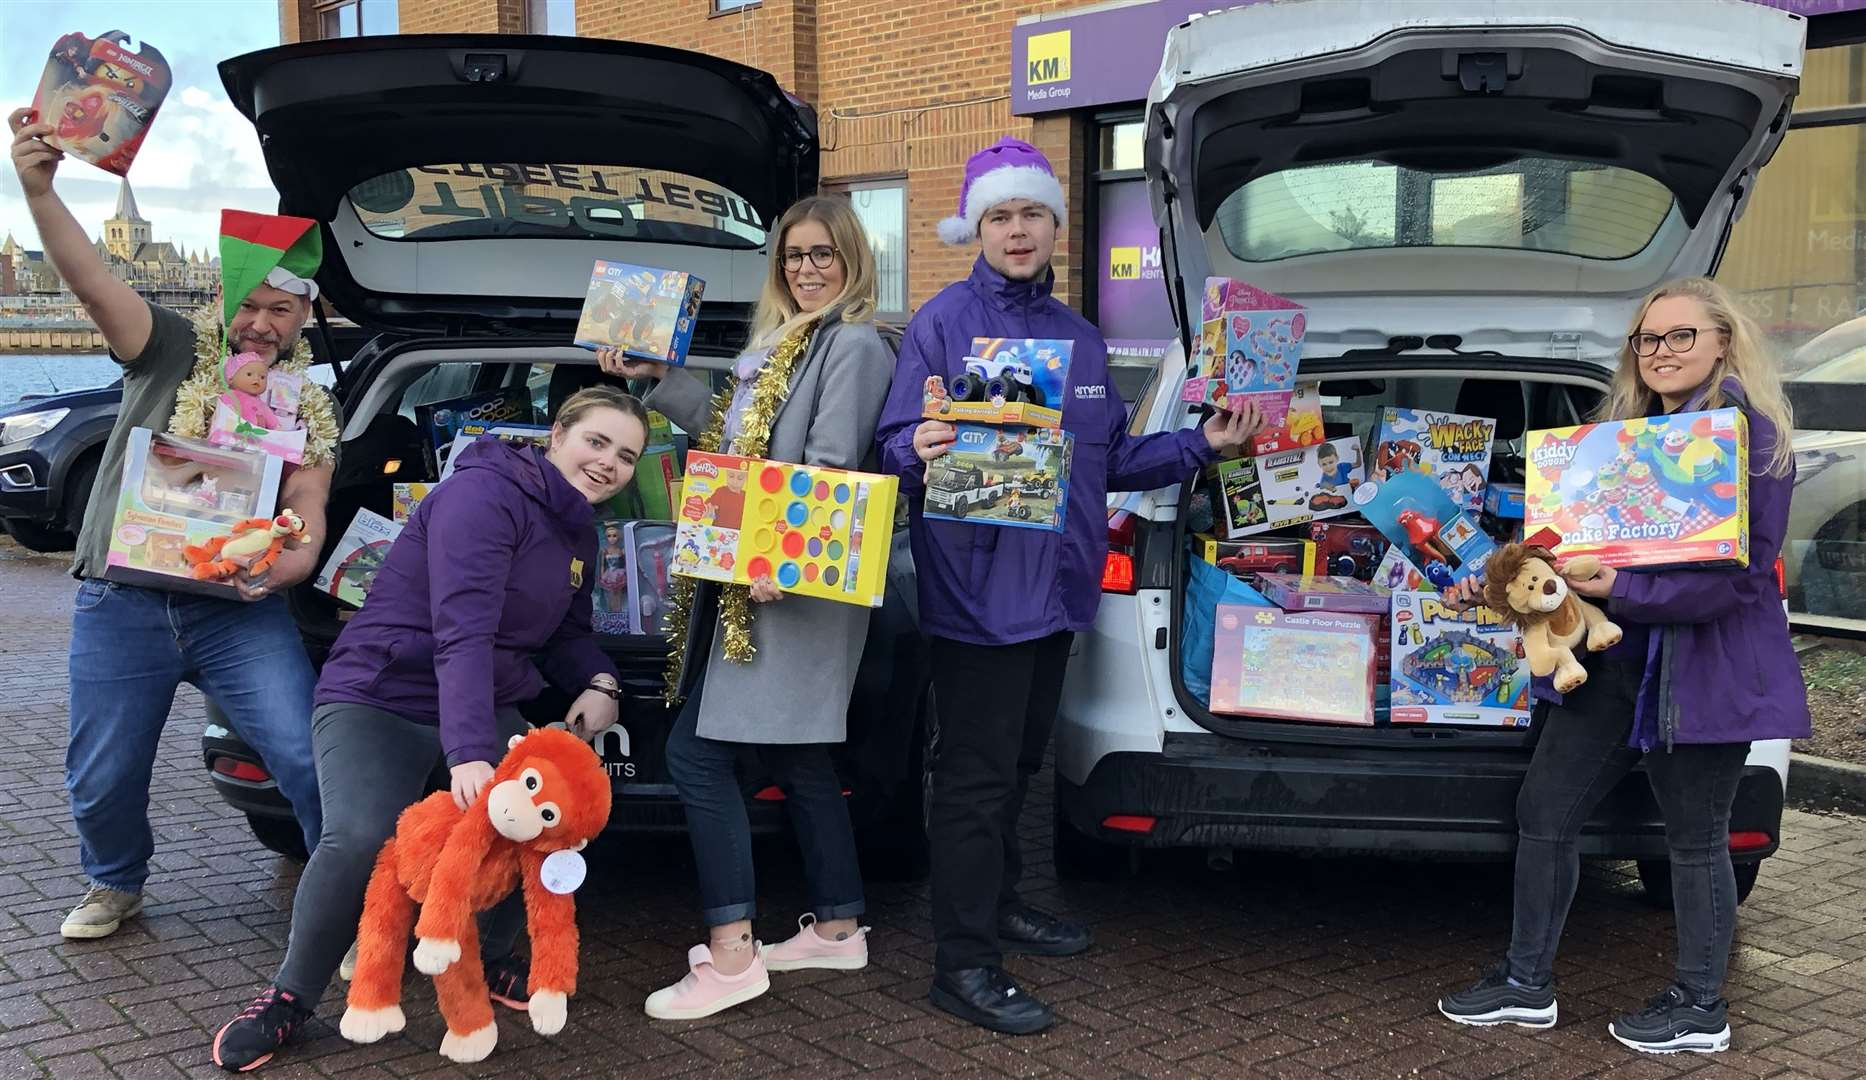 The kmfm Street Team and breakfast show presenters Garry and Laura get ready to deliver toys last Christmas